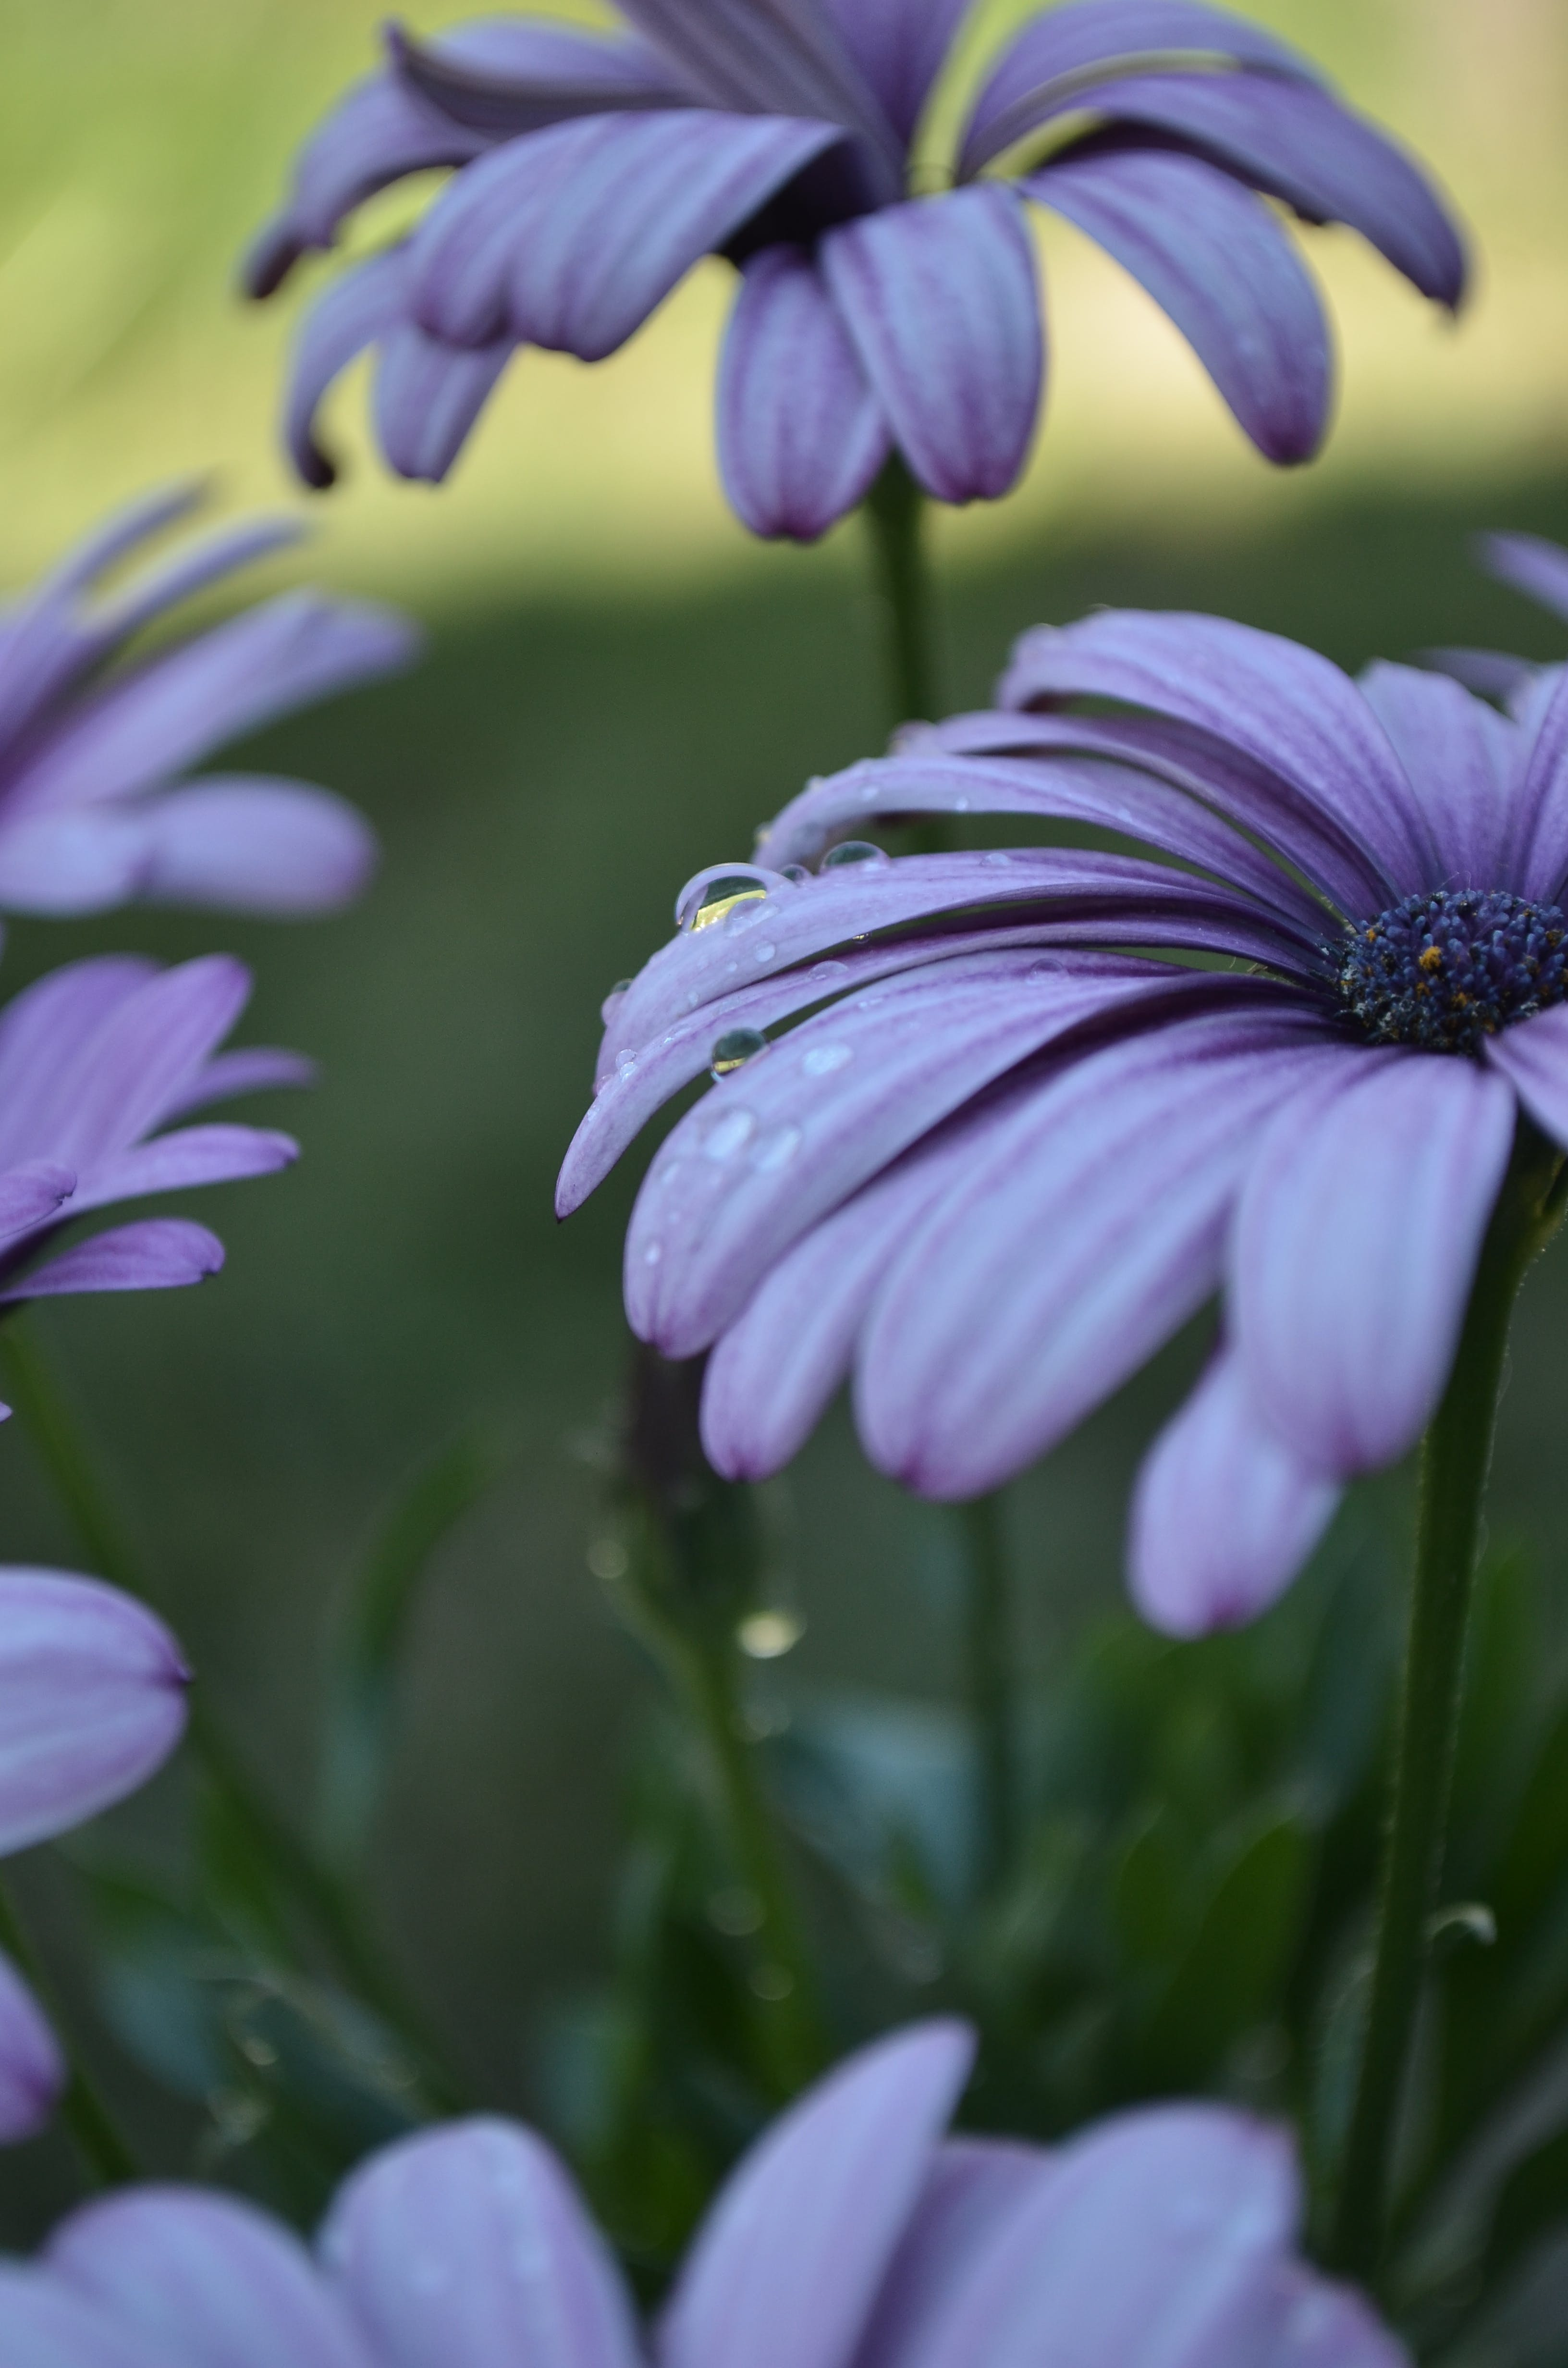 Free stock photo of flower, nature, violet